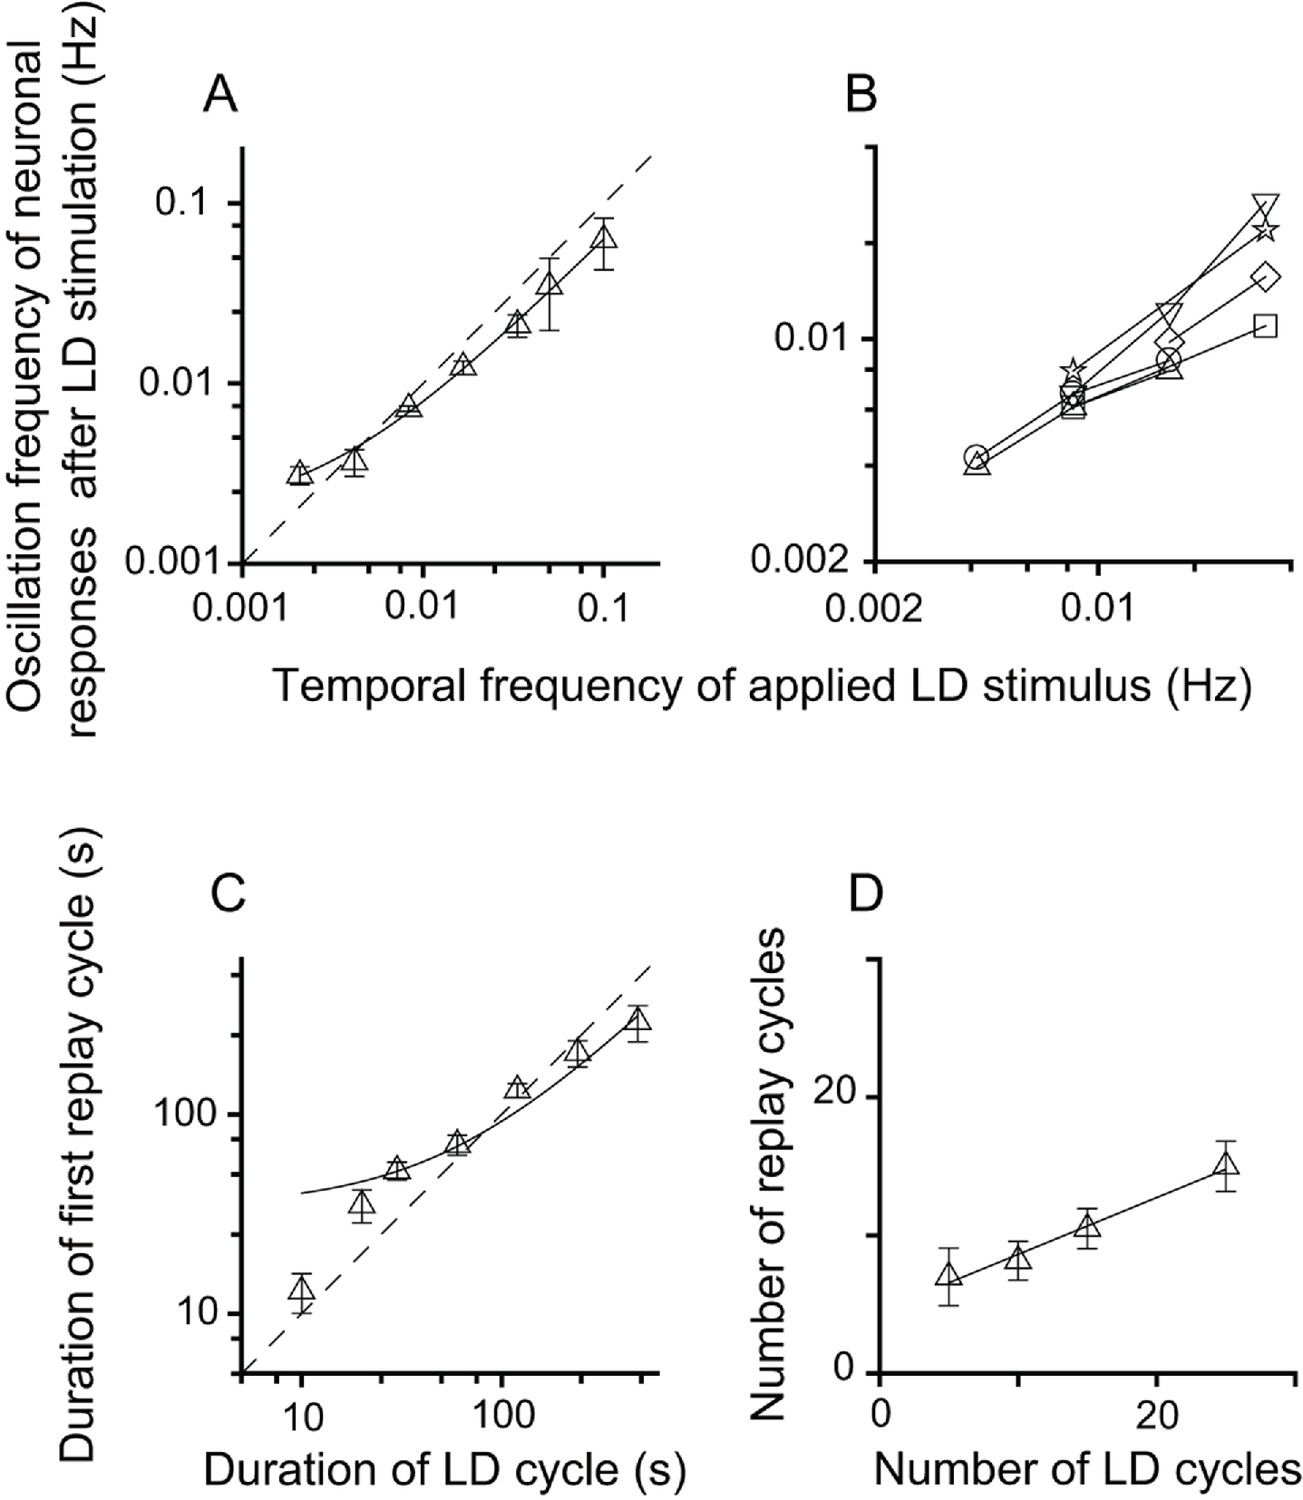 Representation Of Time Interval Entrained By Periodic Stimuli In The Cap Discharge Circuit O27 Switch Relationship Between Parameters Ld Stimulus And Neuronal Responses Replay Cells After Stimulation Dla